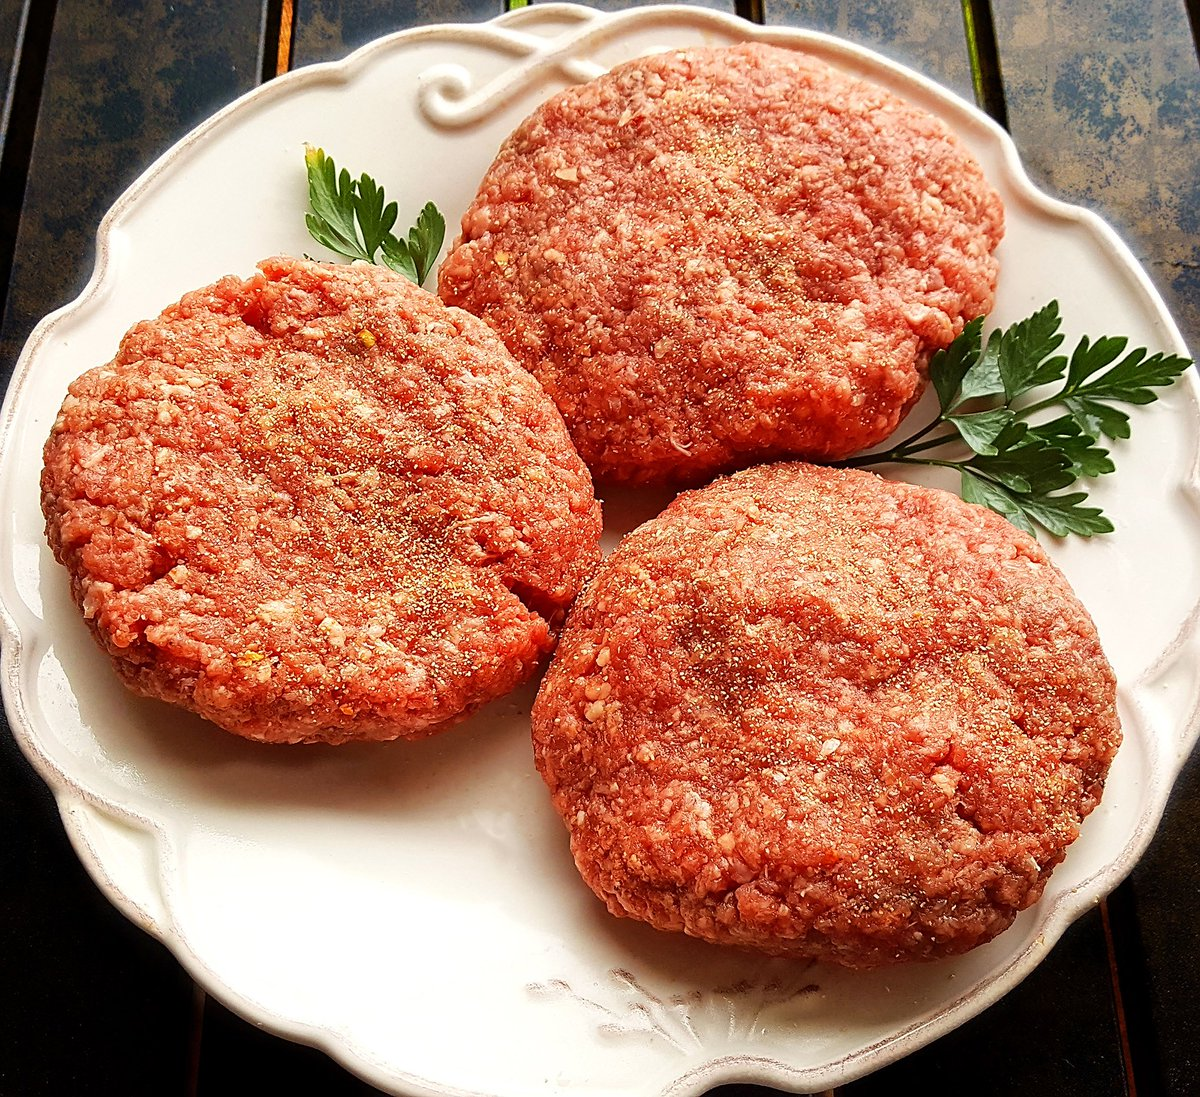 Ground bison meat responsible for E.coli outbreak in 7 states